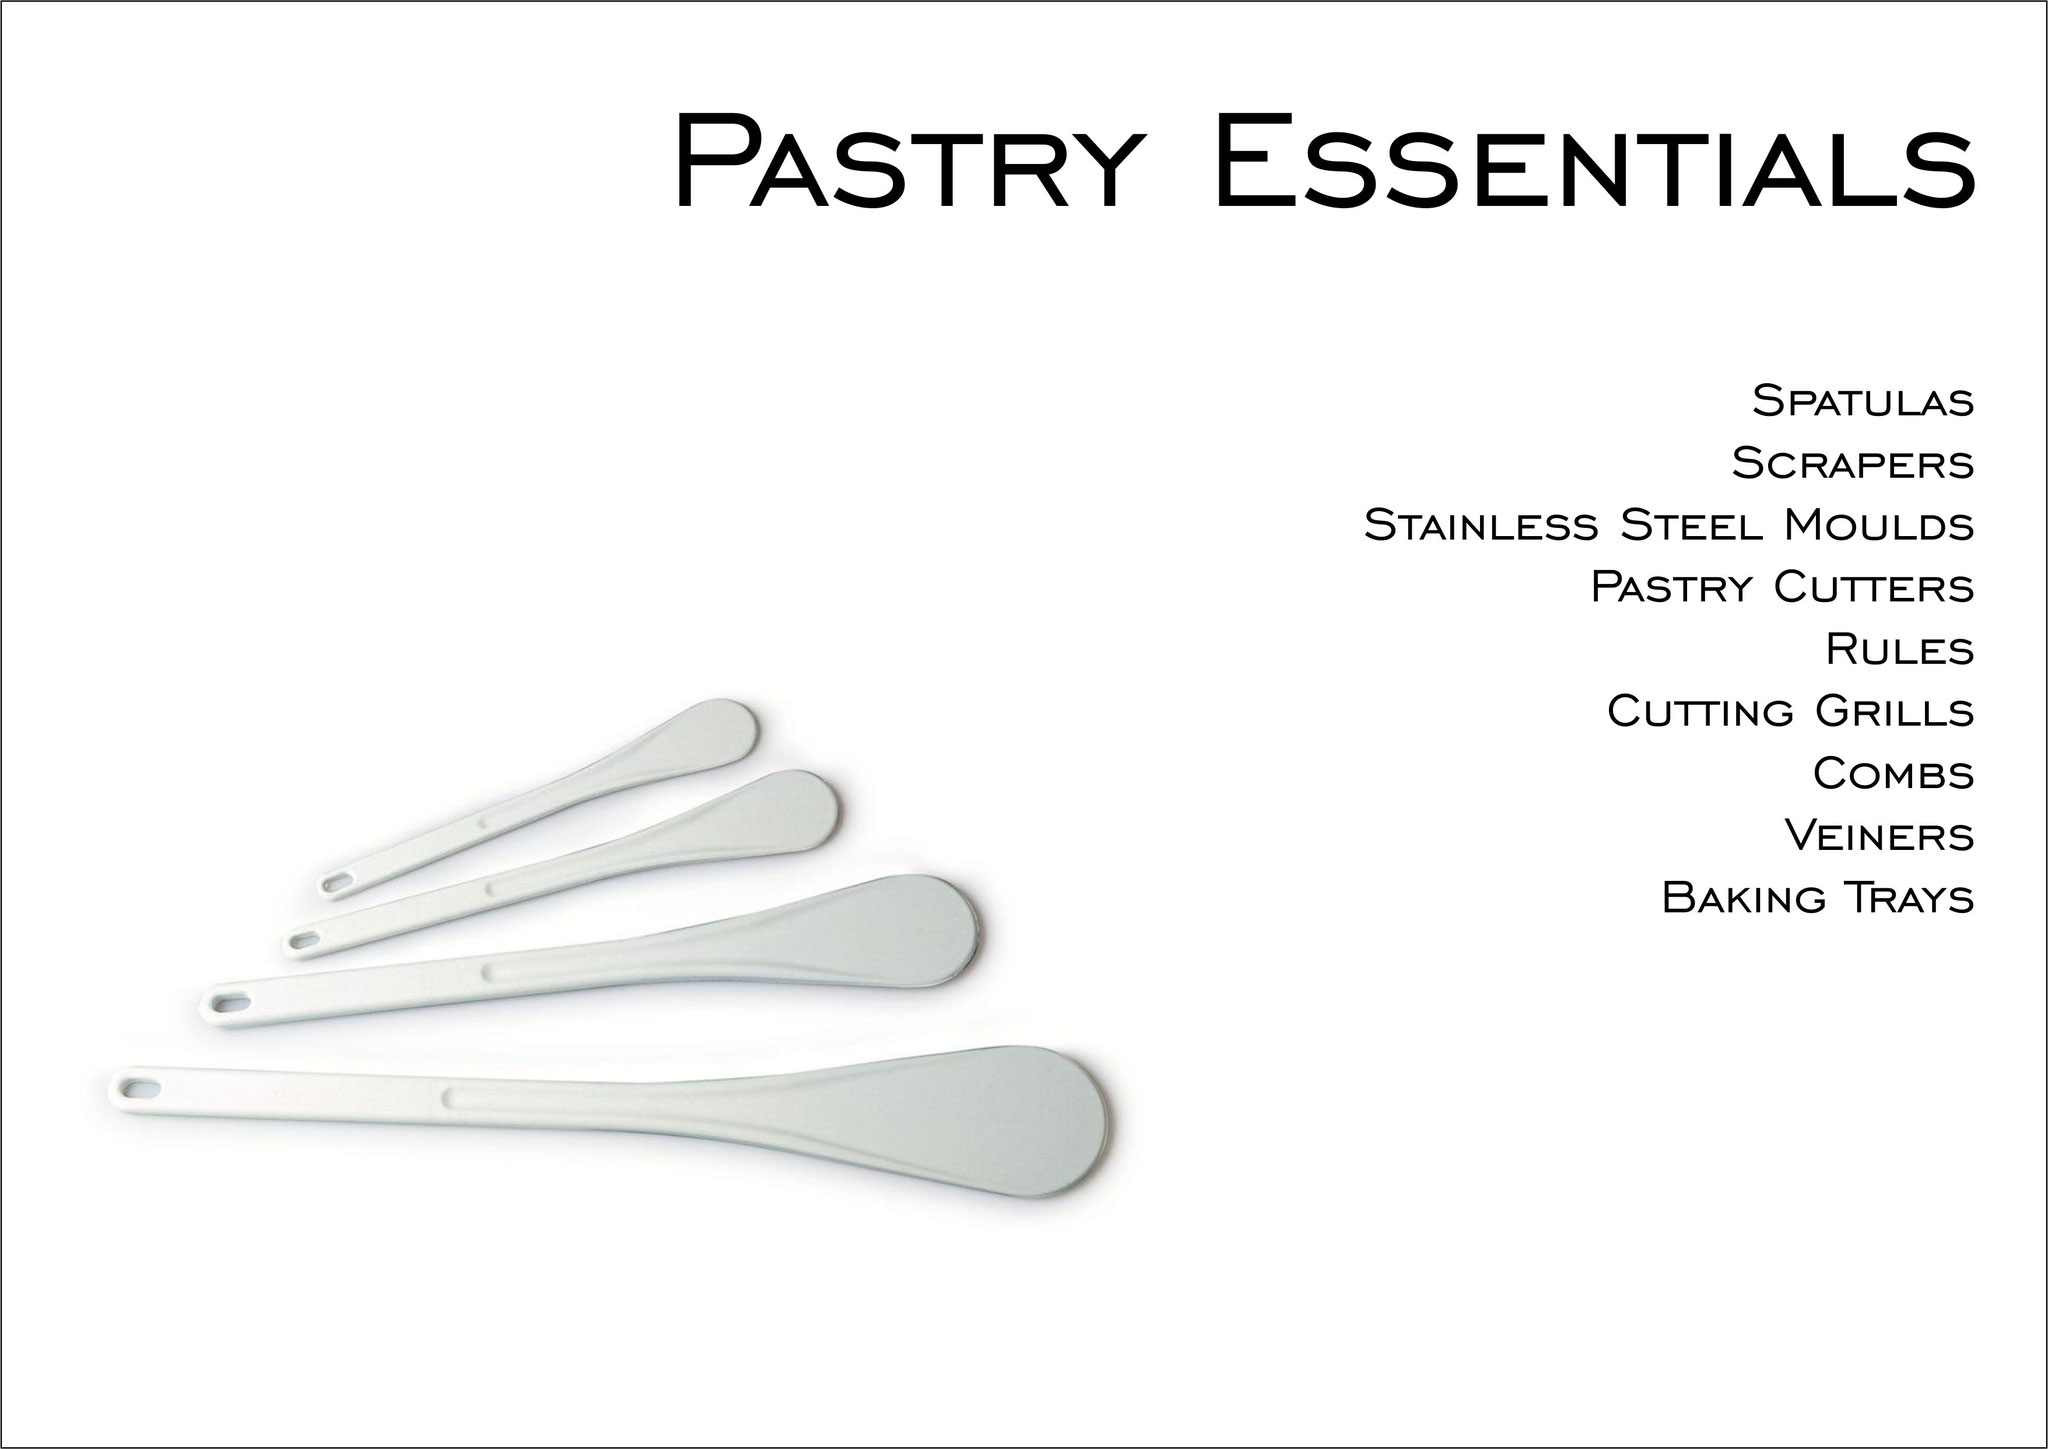 Pastry Essentials